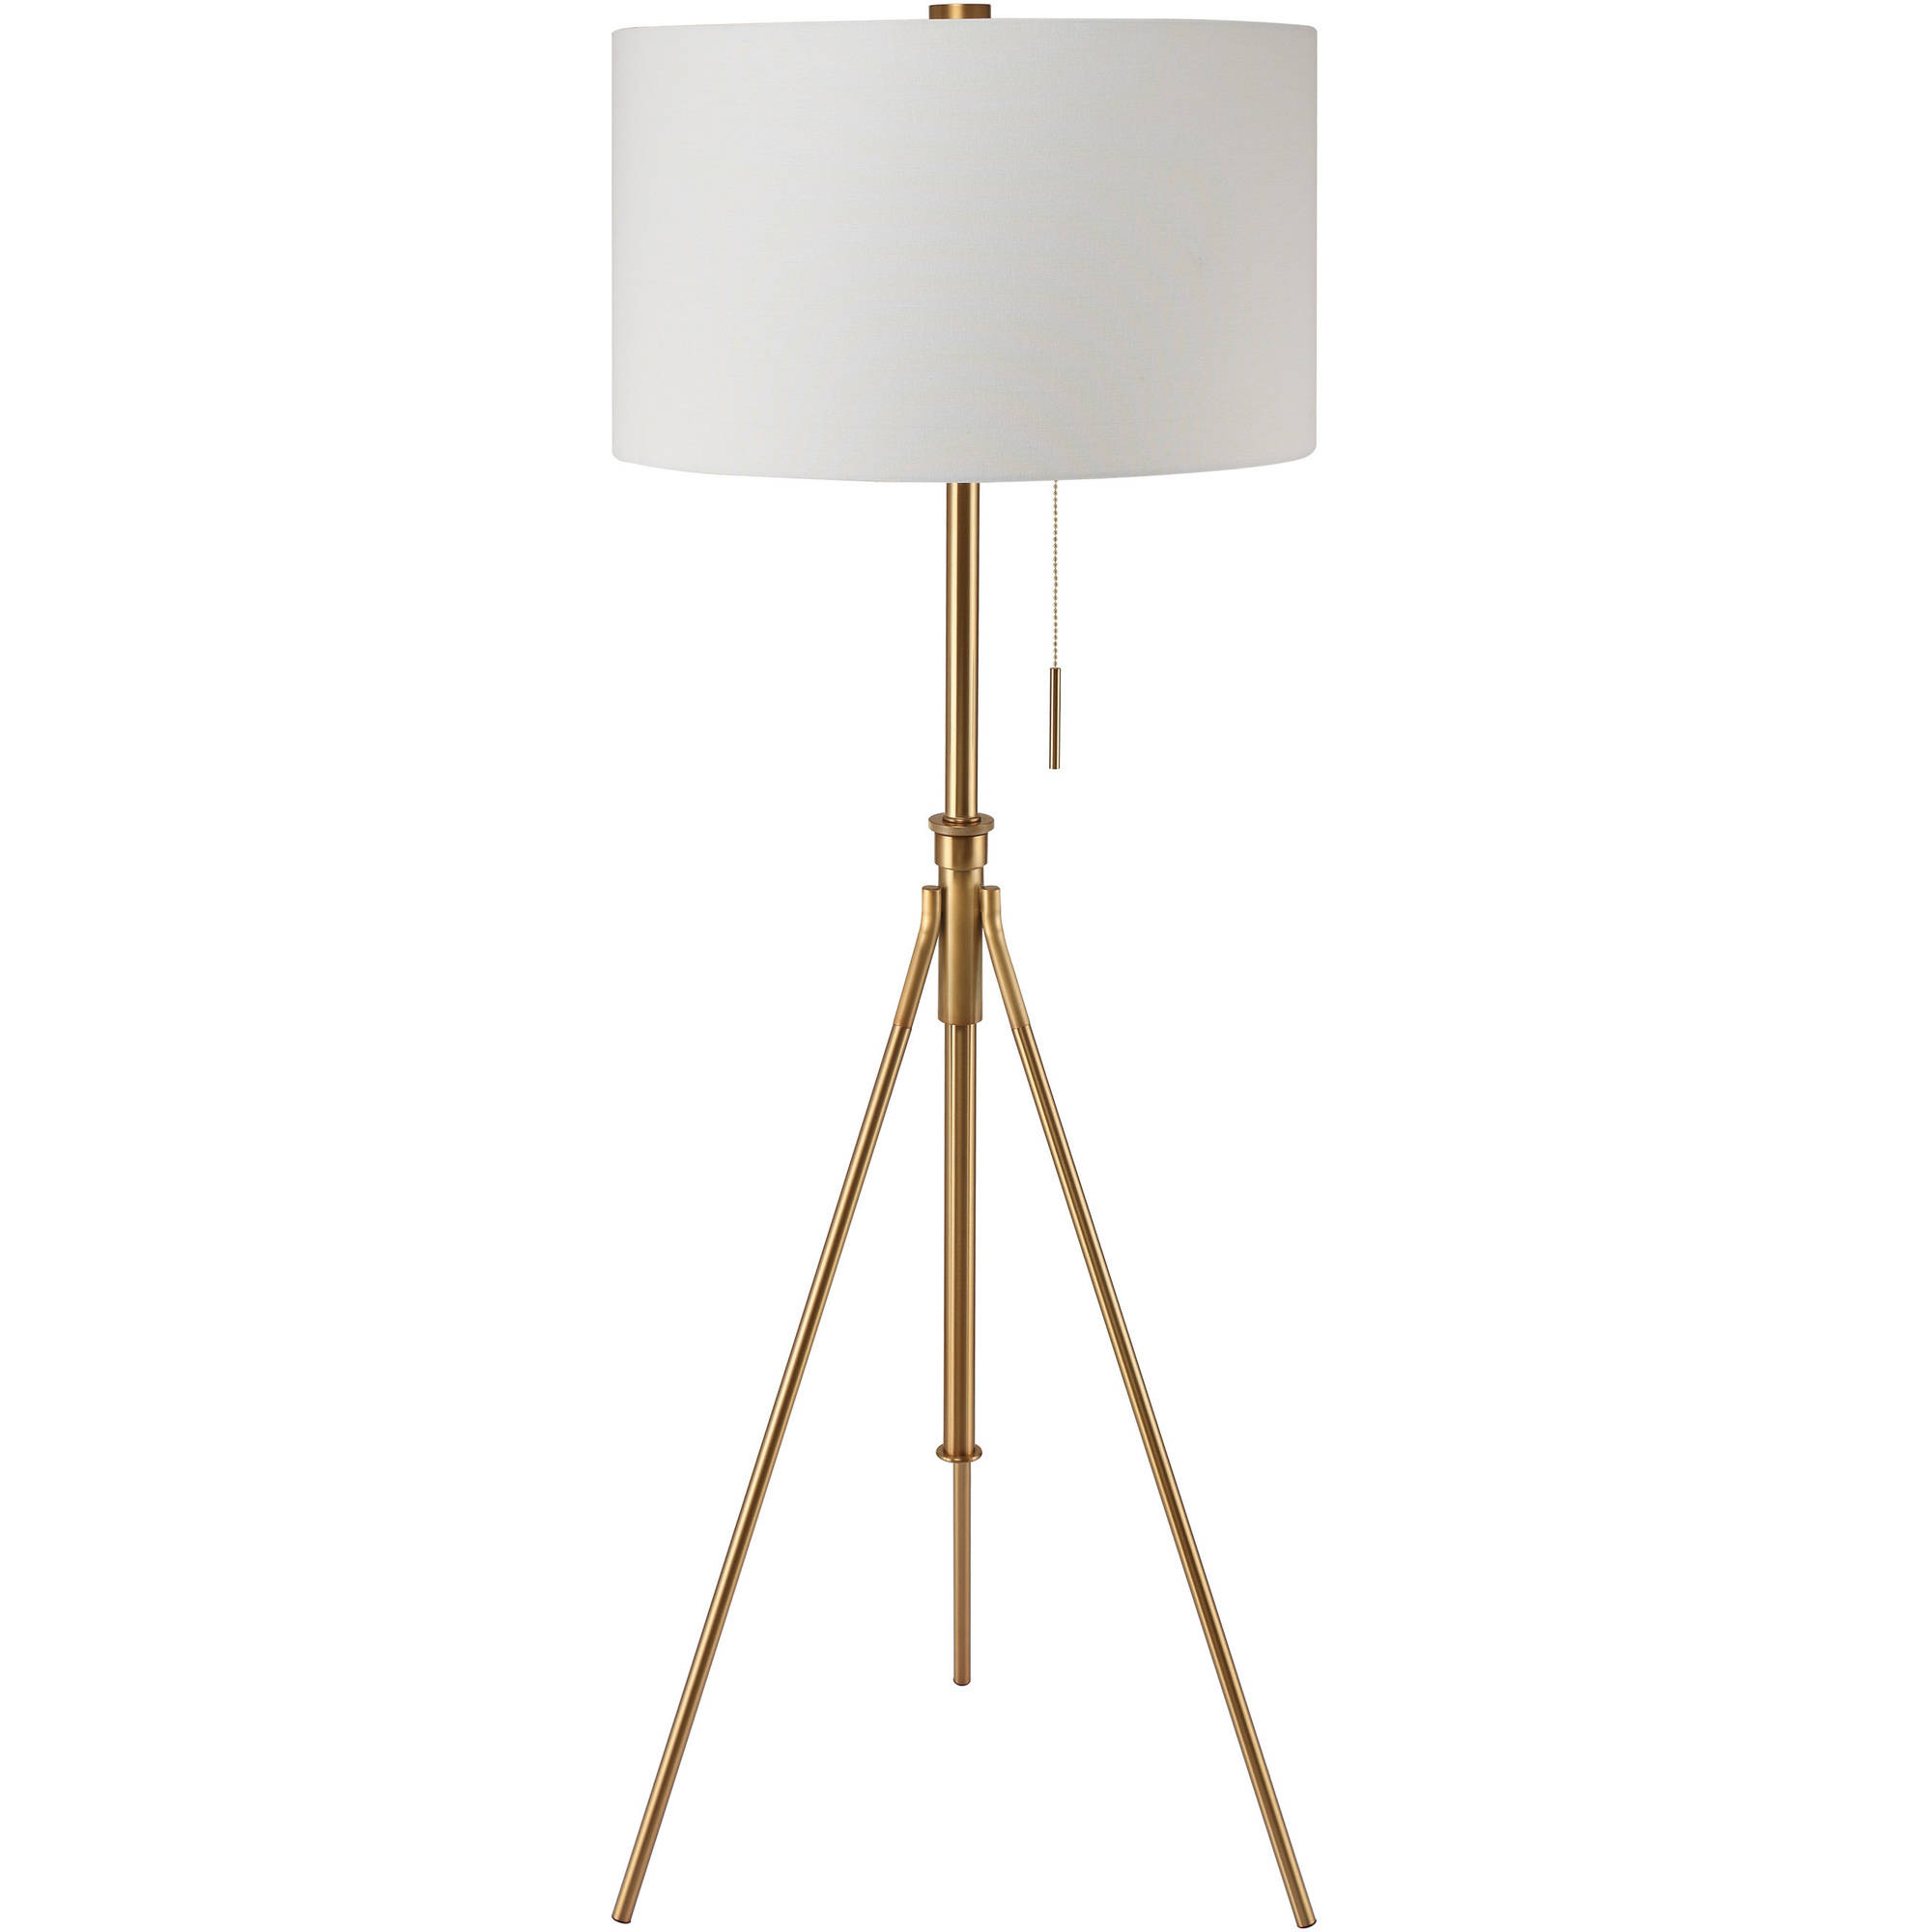 """58"""" to 72""""H Mid-Century Adjustable Tripod Gold Floor Lamp by Ore International"""